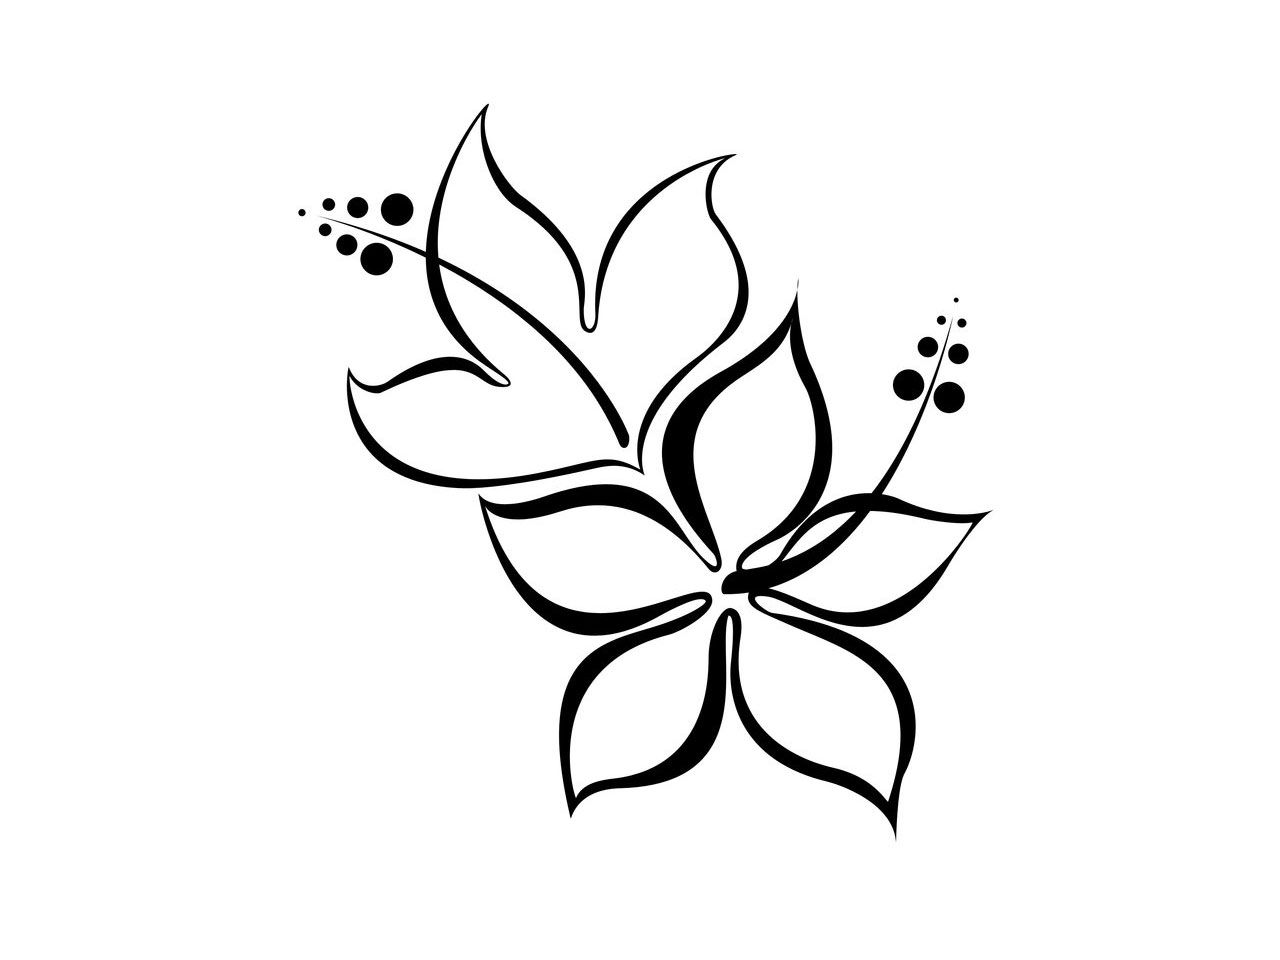 Art Simple Drawing Simple Flower Drawings in